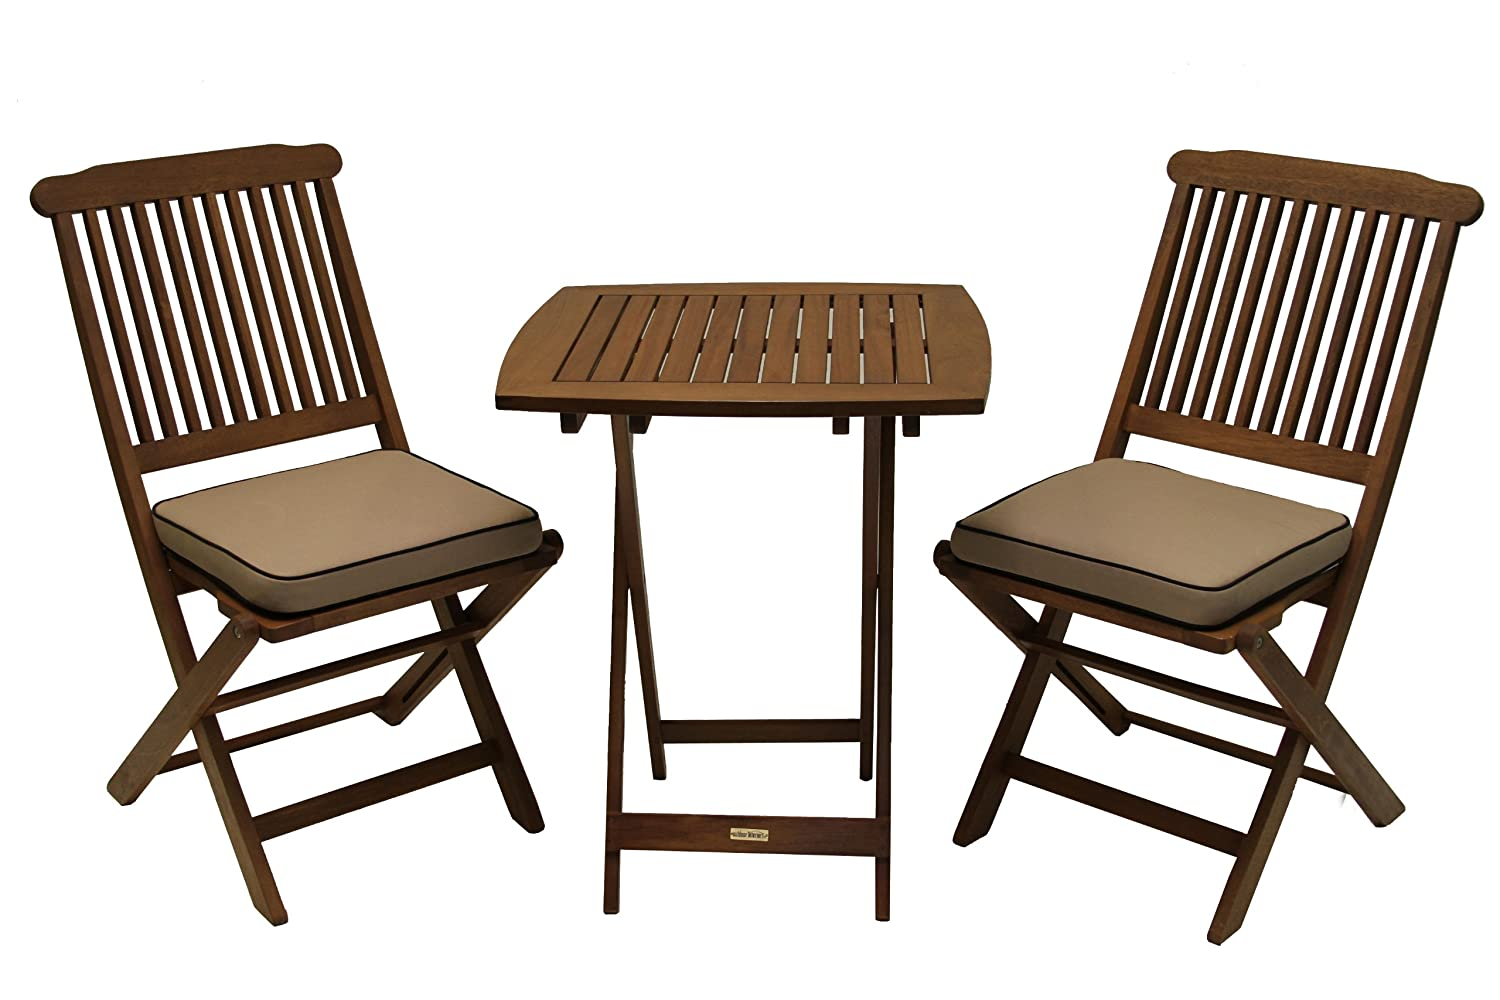 Amazon.com: Outdoor Interiors Eucalyptus 3 Piece Square Bistro Outdoor  Furniture Set   Includes Cushions: Garden U0026 Outdoor